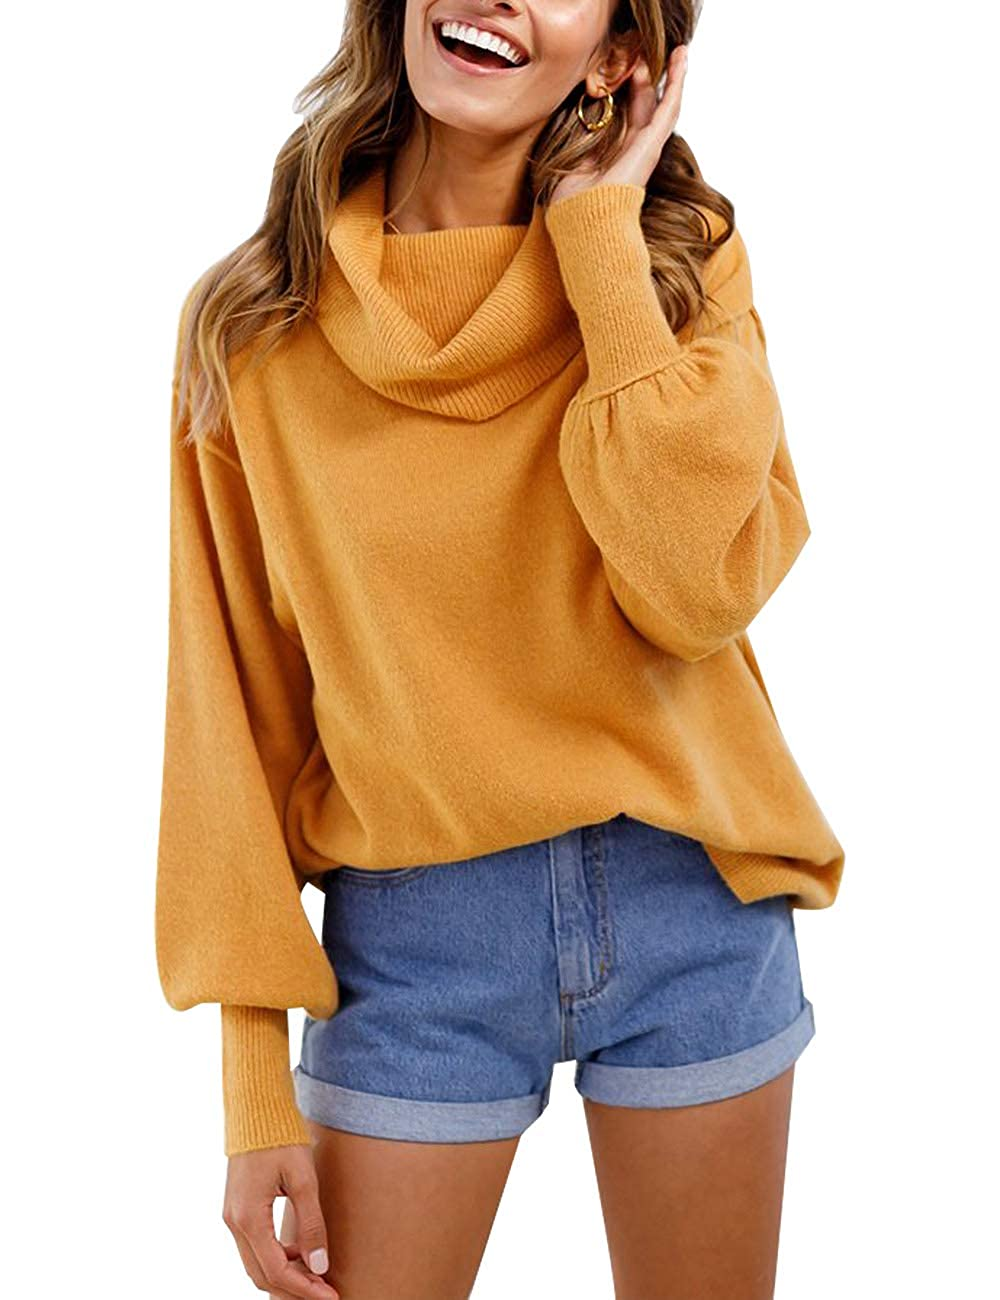 Top 10 wholesale Loose Winter Sweaters - Chinabrands.com 670f80f63